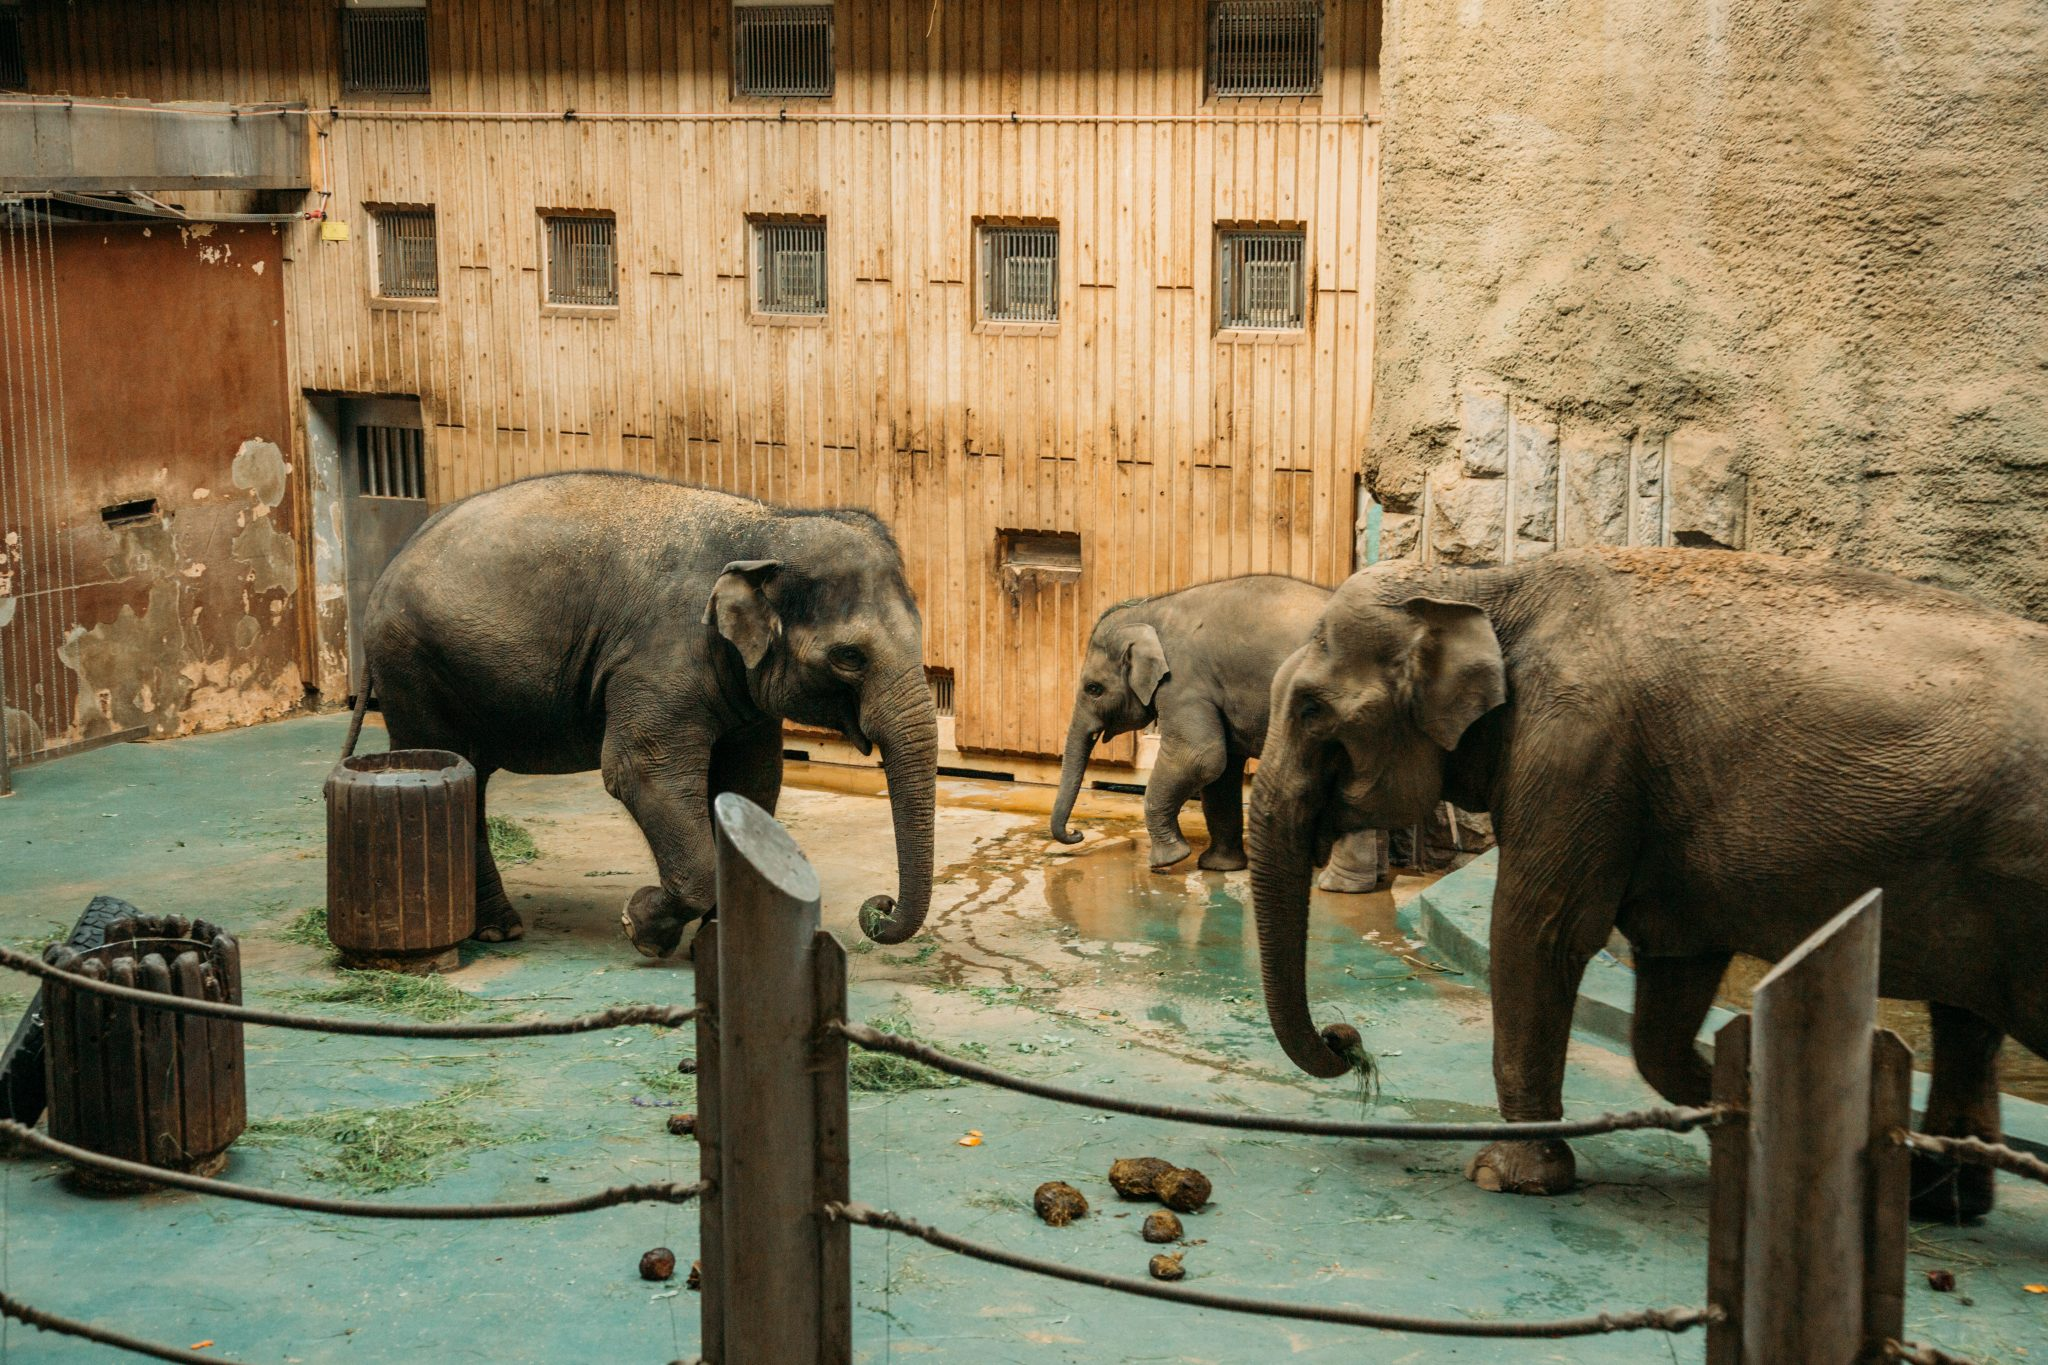 Elephants at the Moscow Zoo during their feeding time